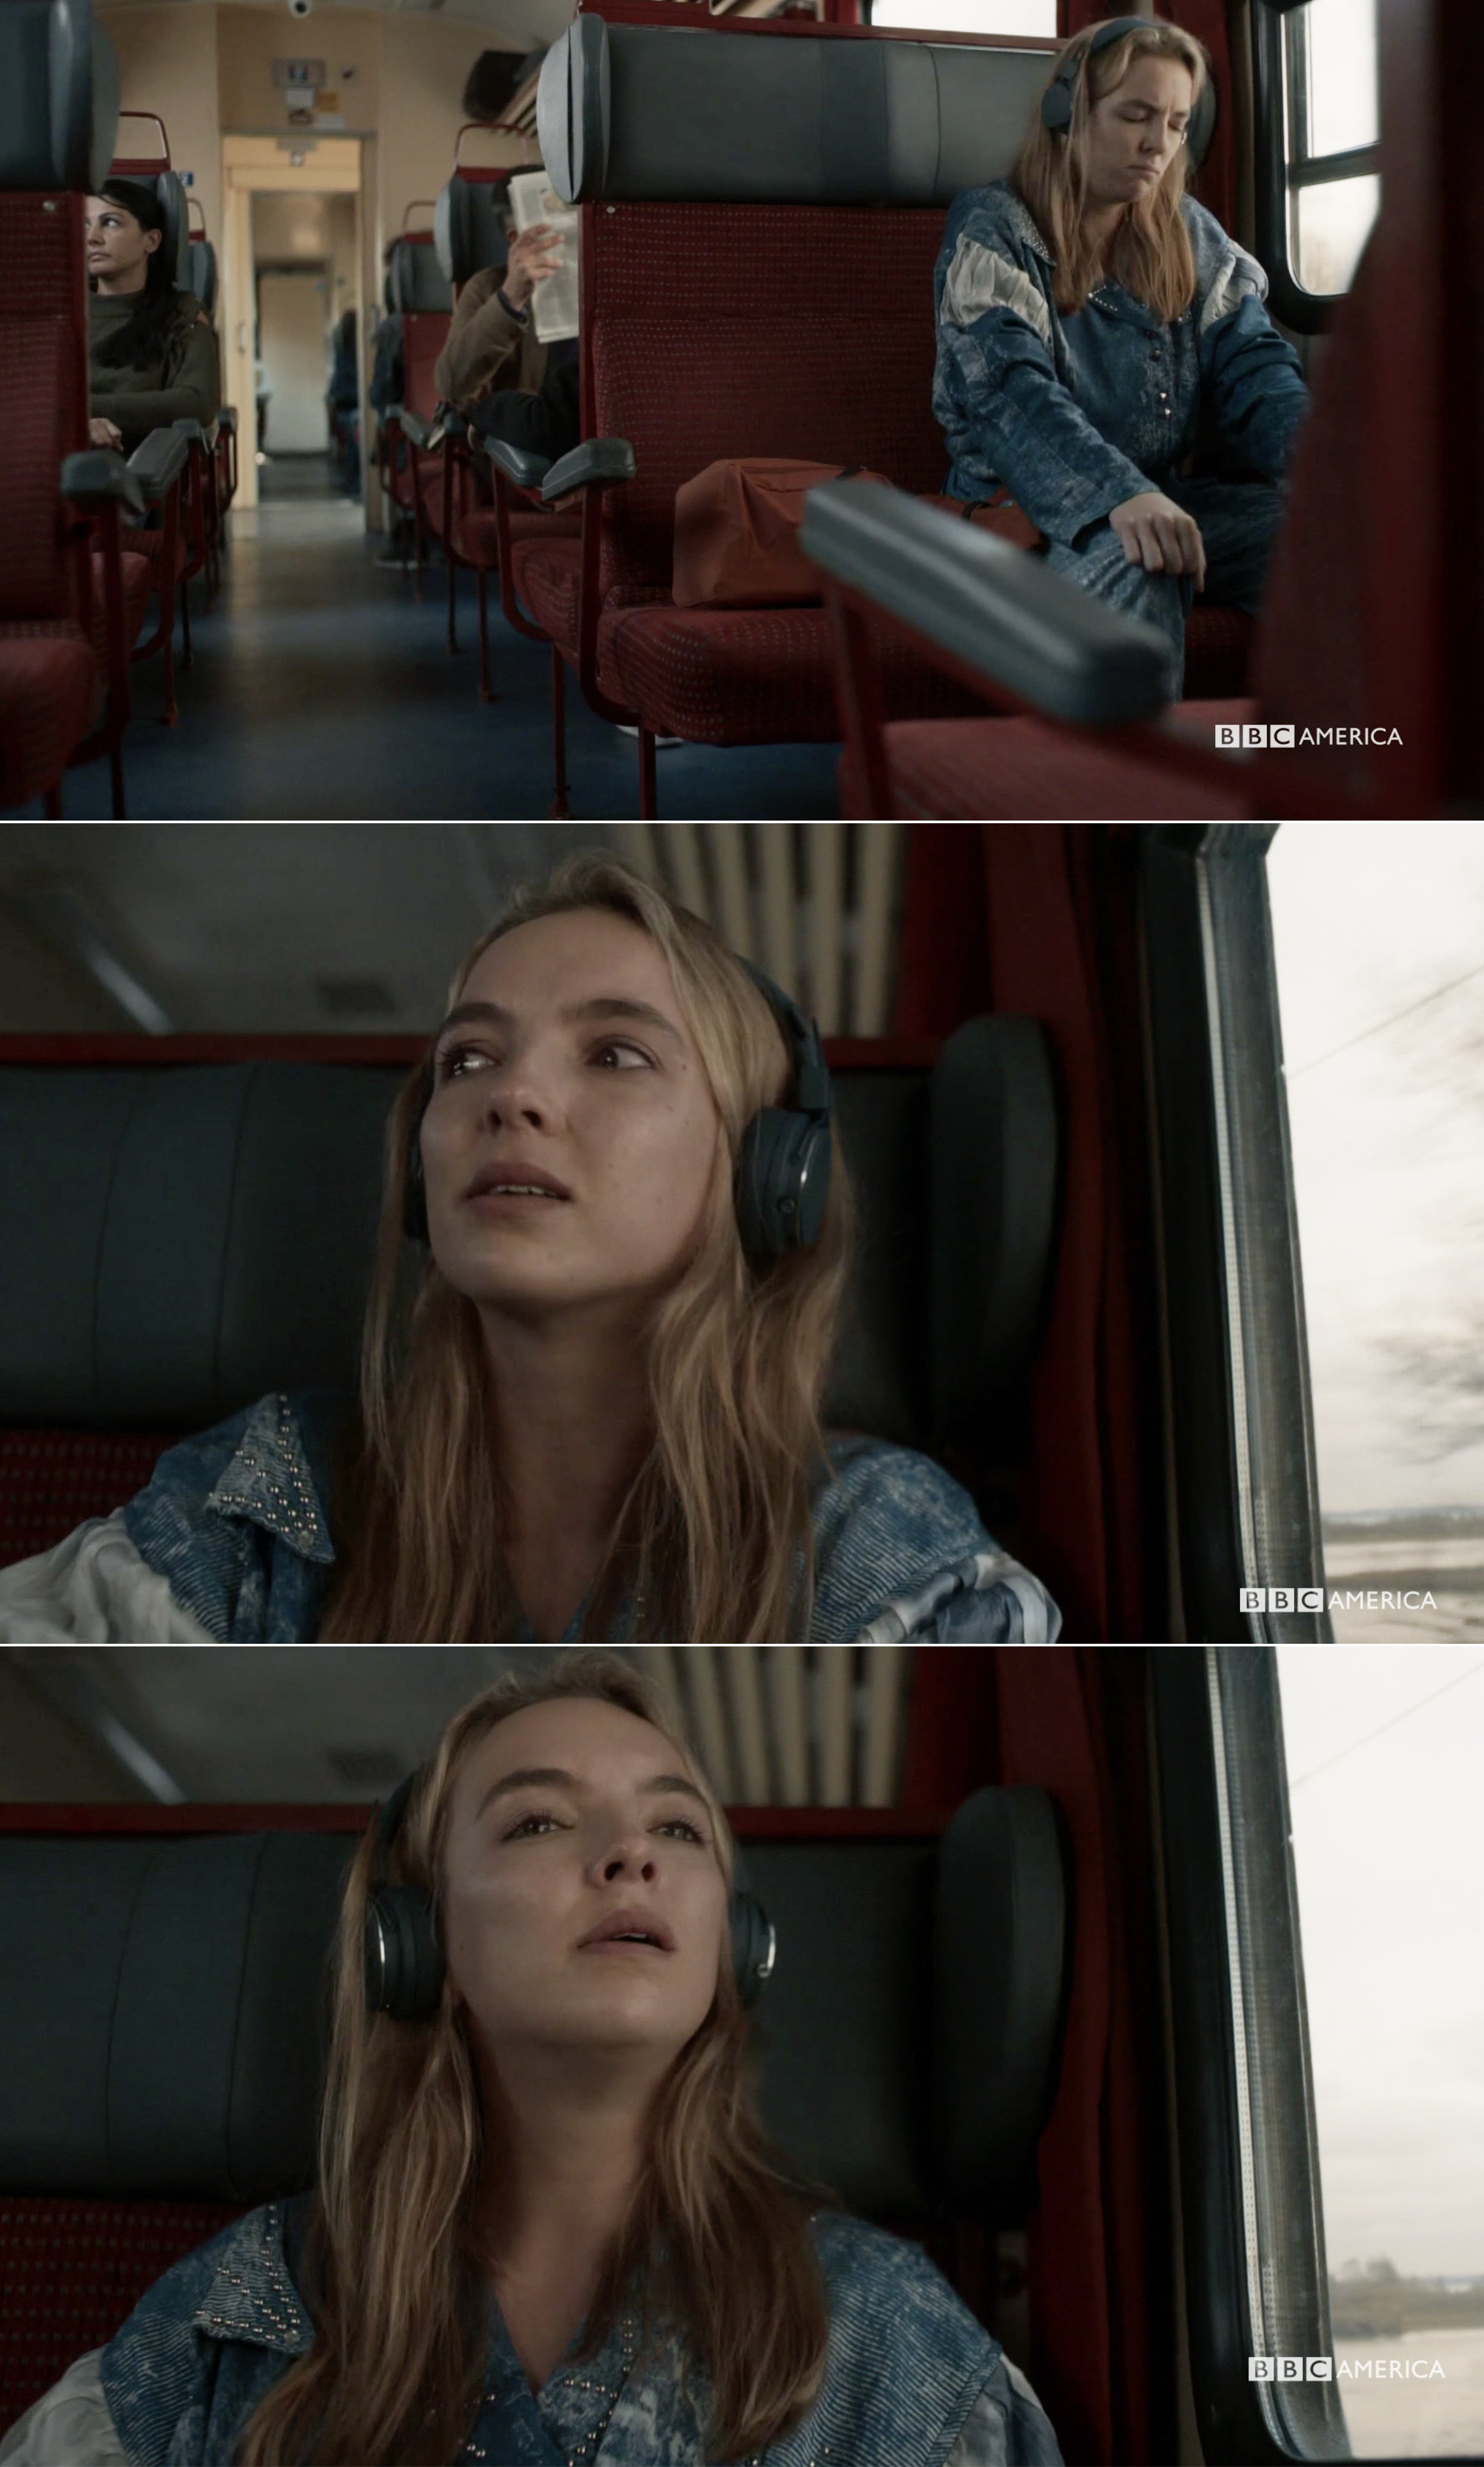 Villanelle looking out the window and crying on the train